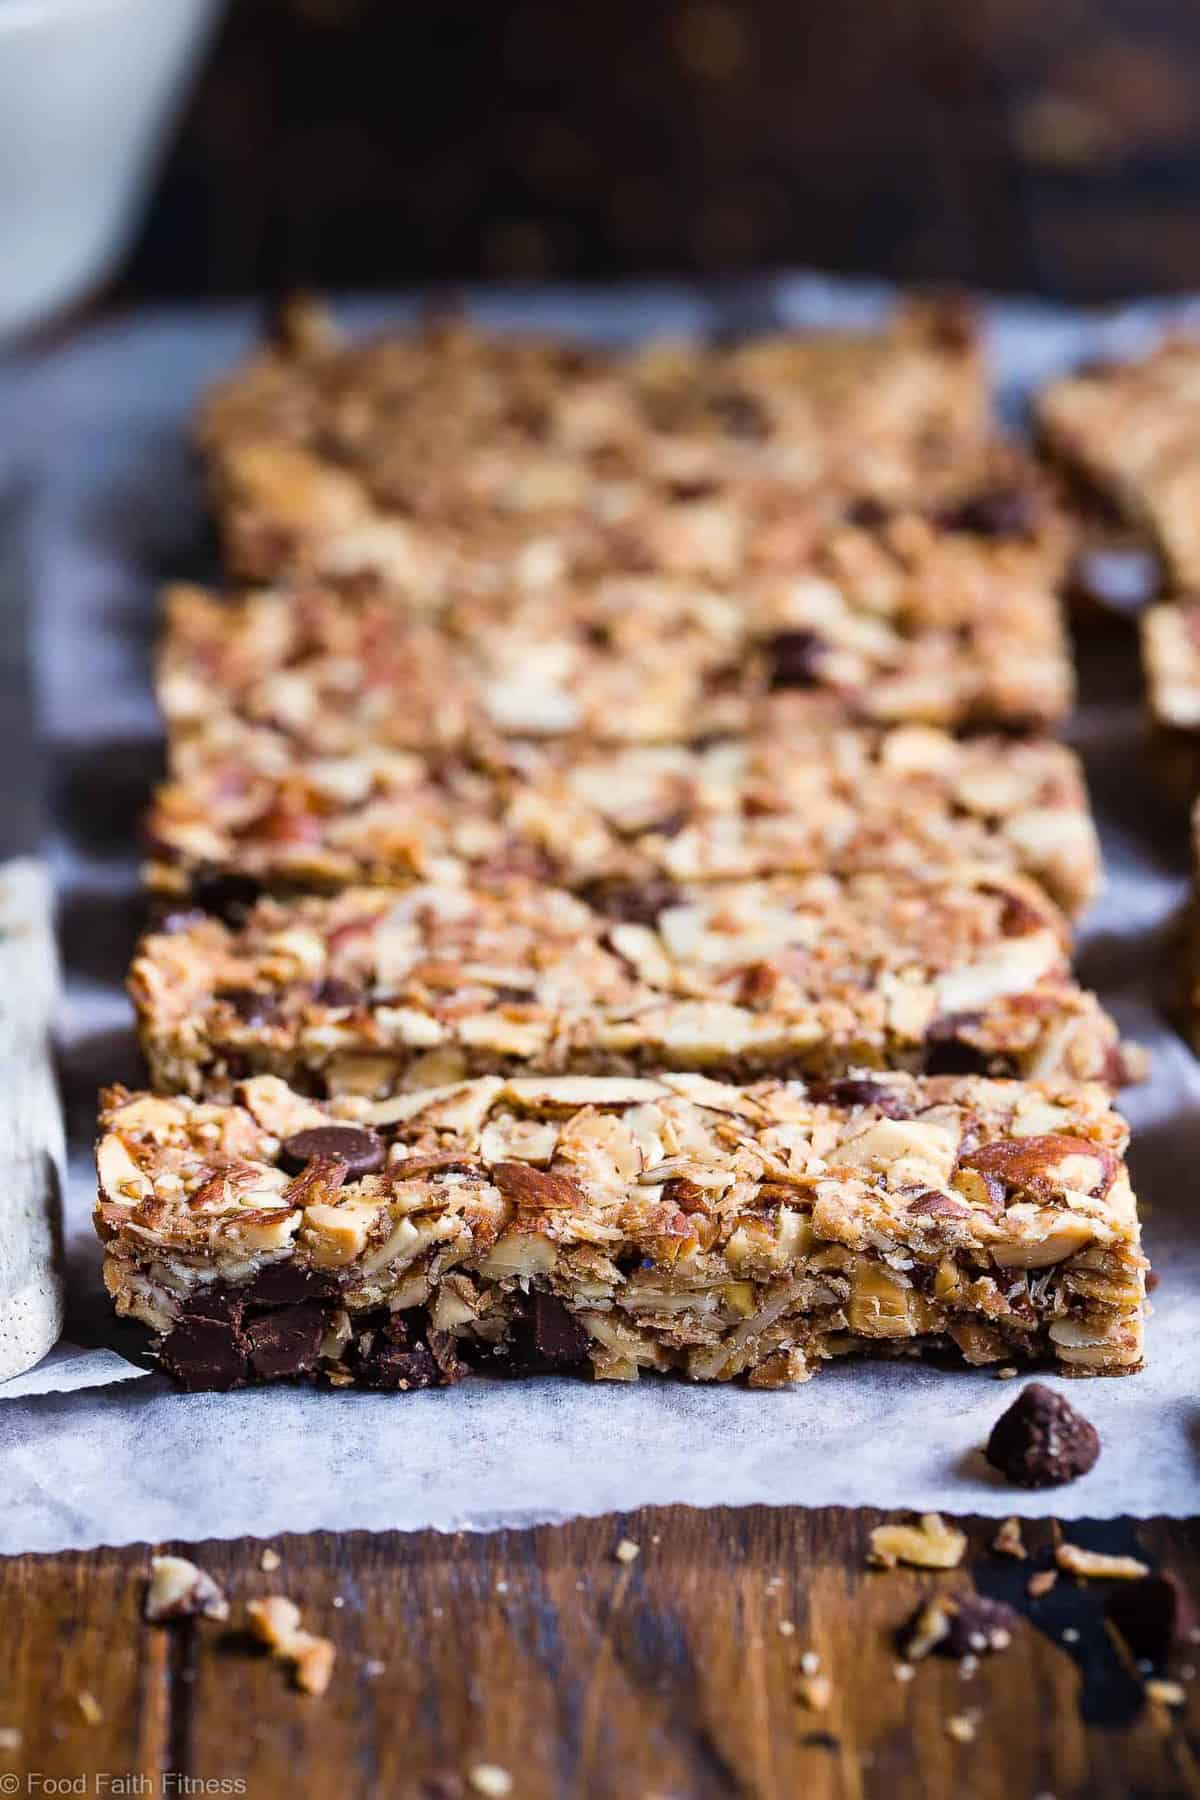 Sugar Free Keto Low Carb Granola Bars Recipe - This keto granola bar recipe is only 7 simple ingredients and tastes like an Almond Joy! Kids or adults will LOVE these and they're portable and freeze great too! | #Foodfaithfitness | #Keto #Glutenfree #Paleo #Dairyfree #Sugarfree